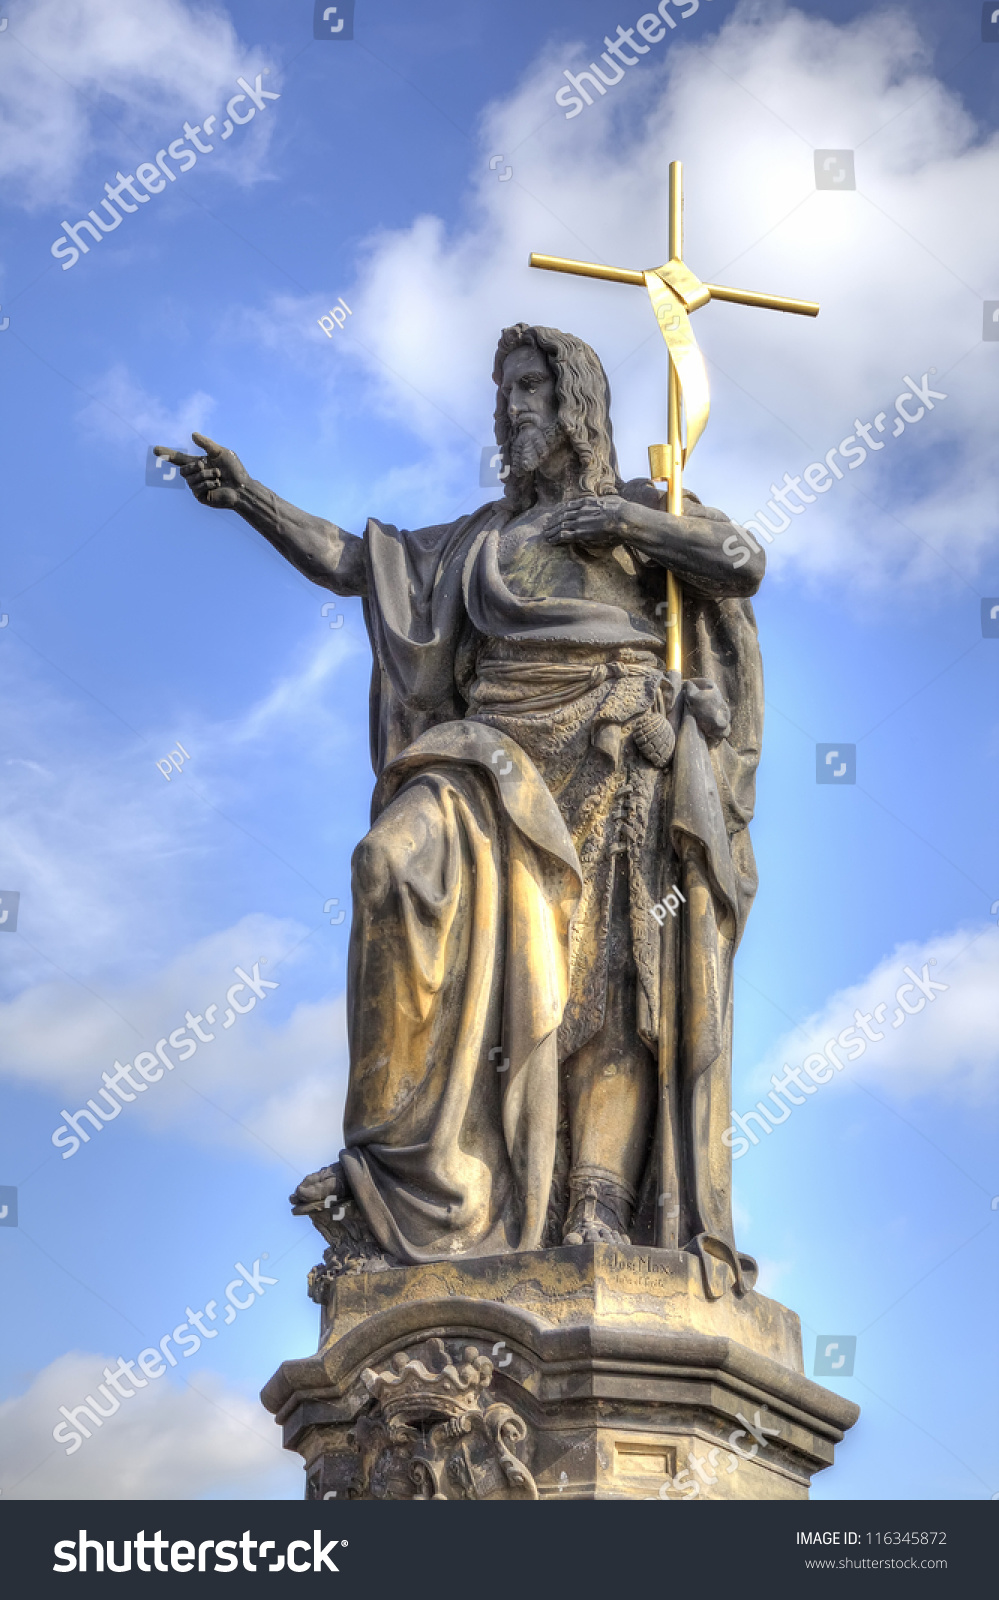 Saint anthony padua stock photo 116345872 shutterstock saint anthony of padua biocorpaavc